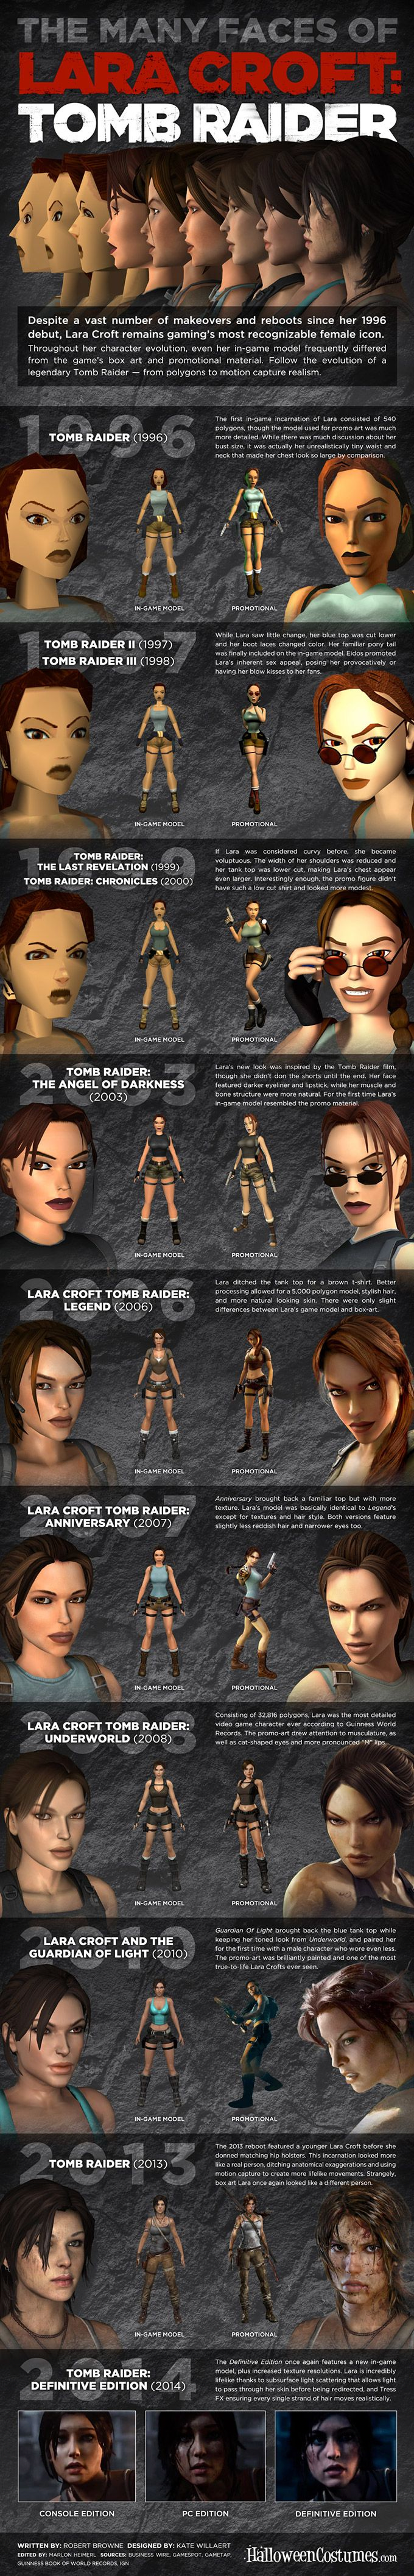 Tomb Raider video game from 1996 to 2014 | Pic | Gear